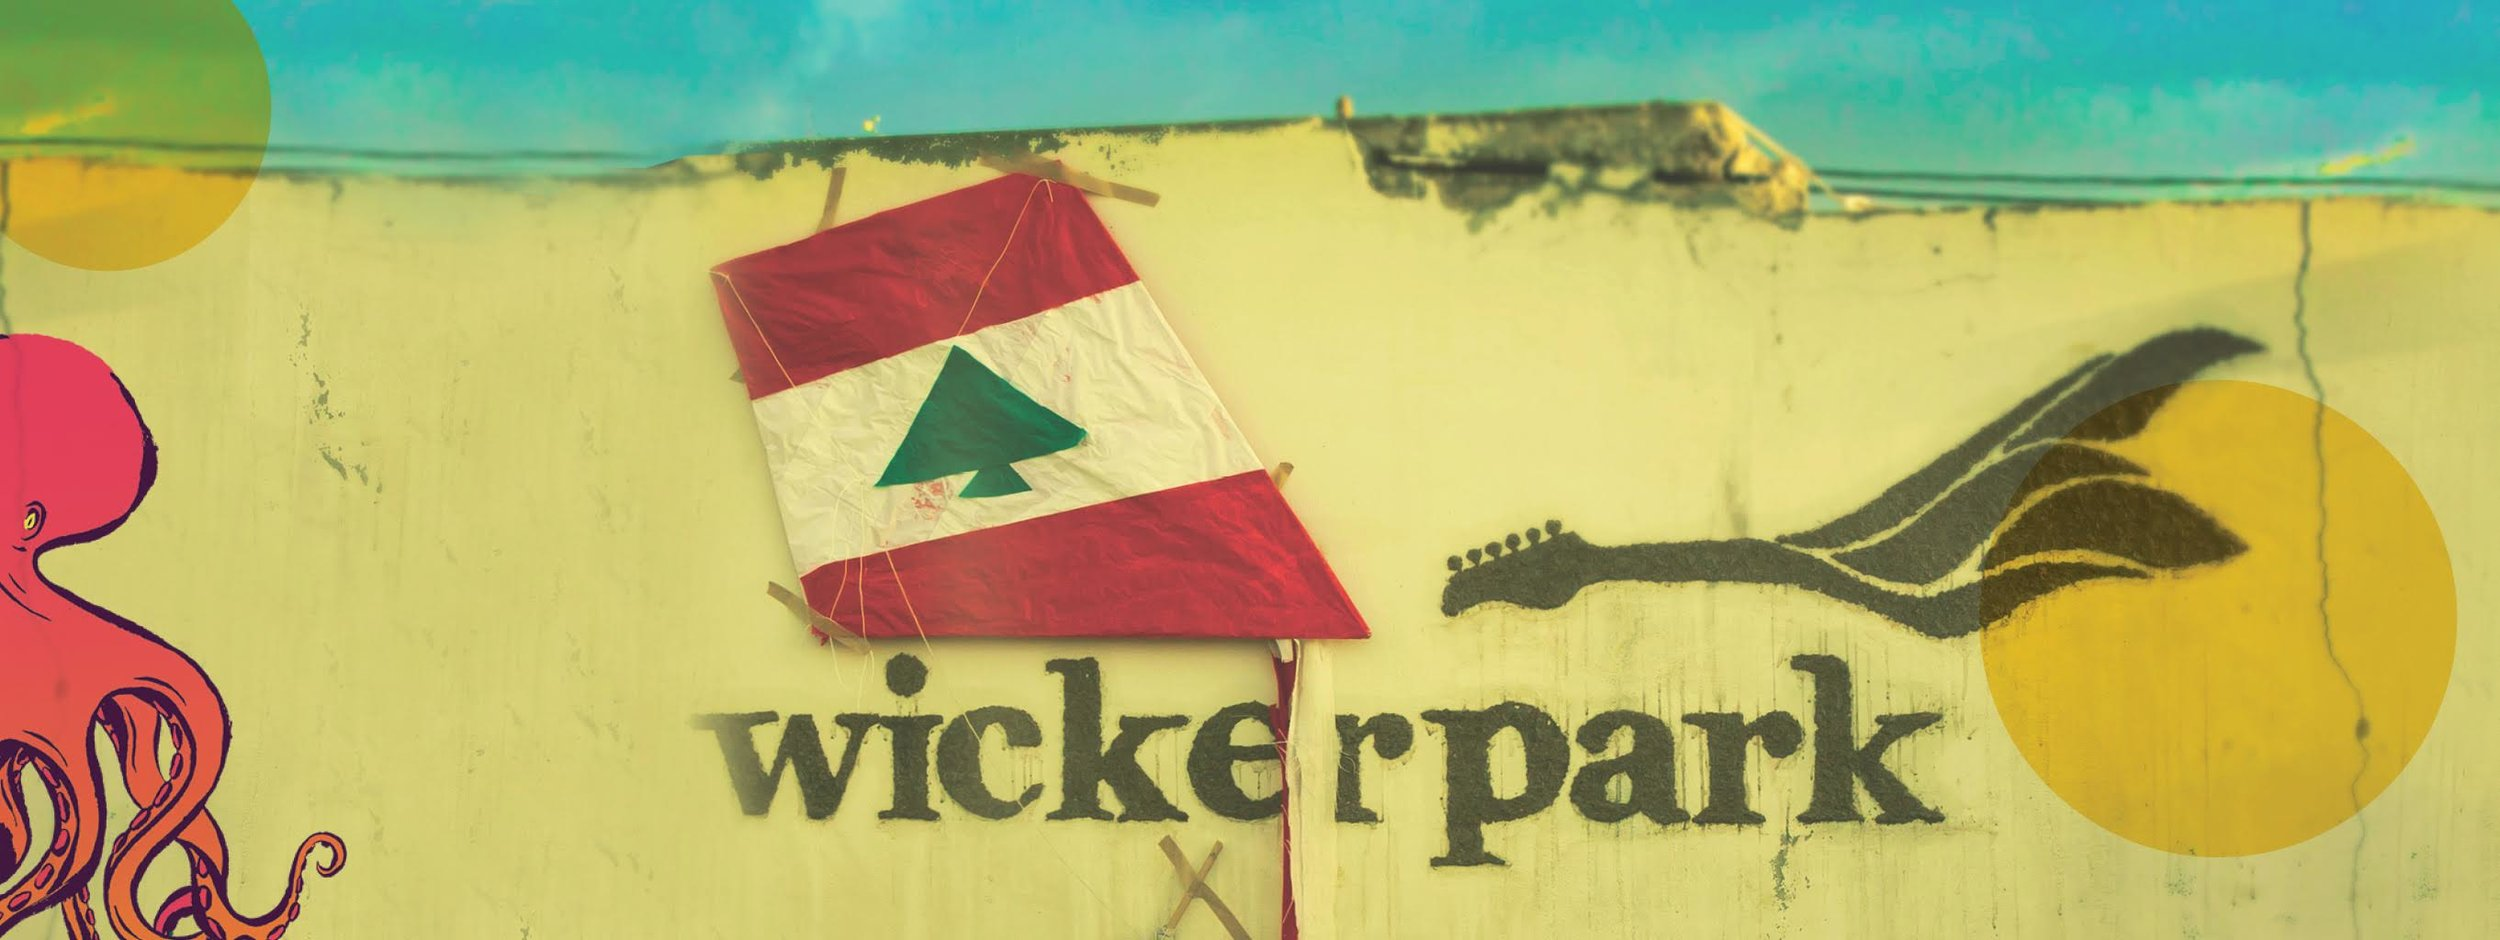 wickerpark_lebanon